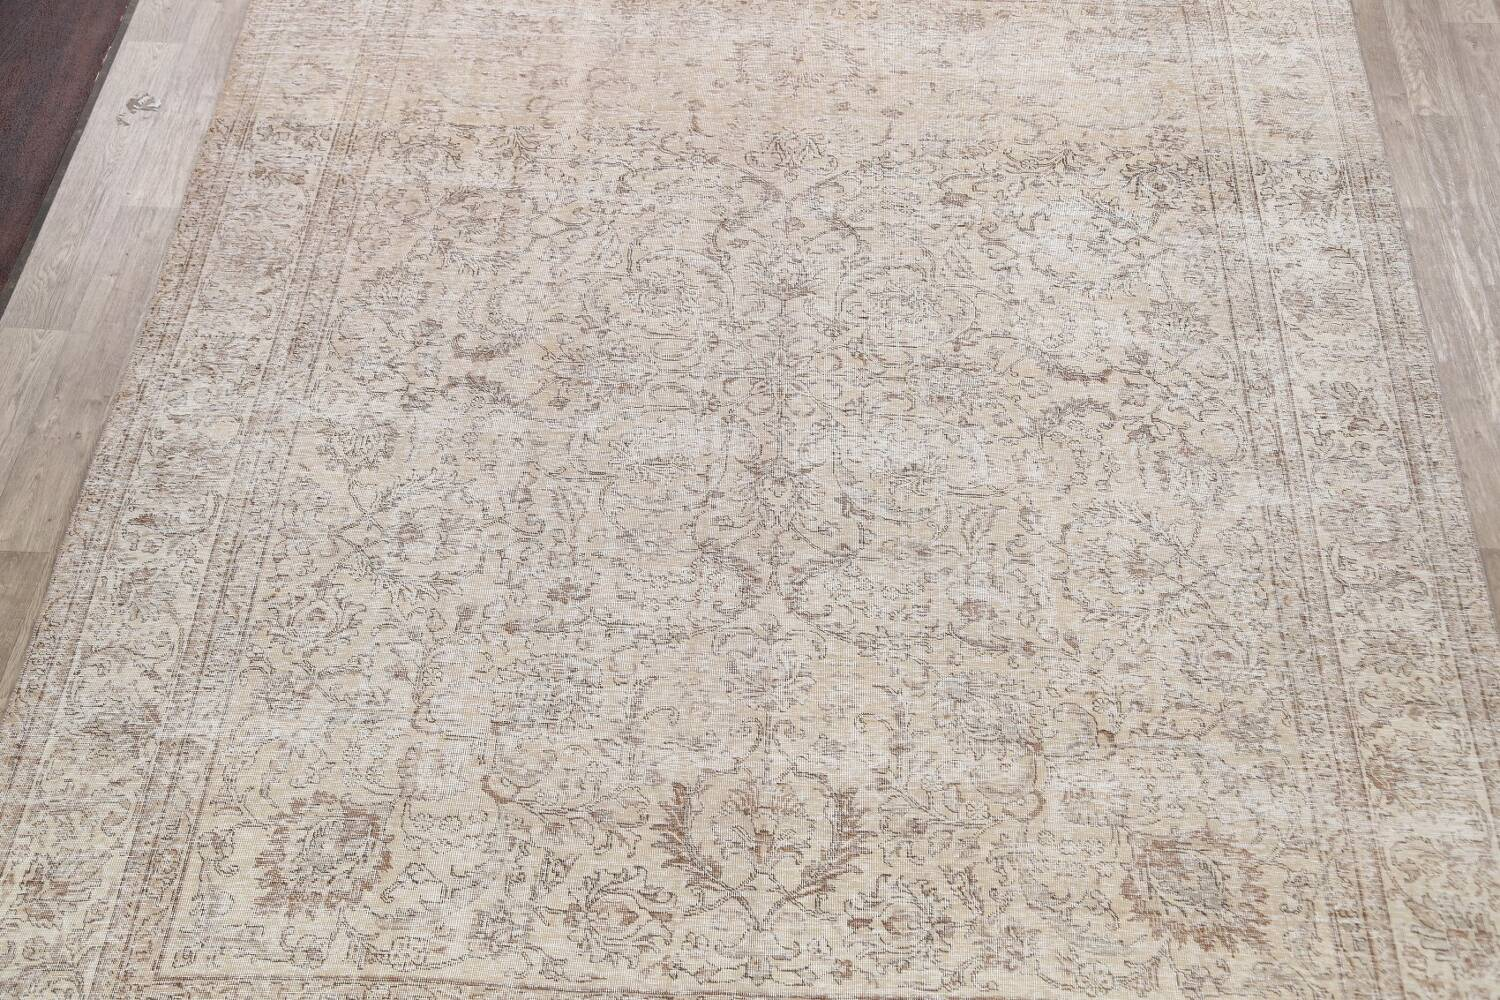 Antique Muted Floral Tabriz Persian Area Rug 9x12 image 3